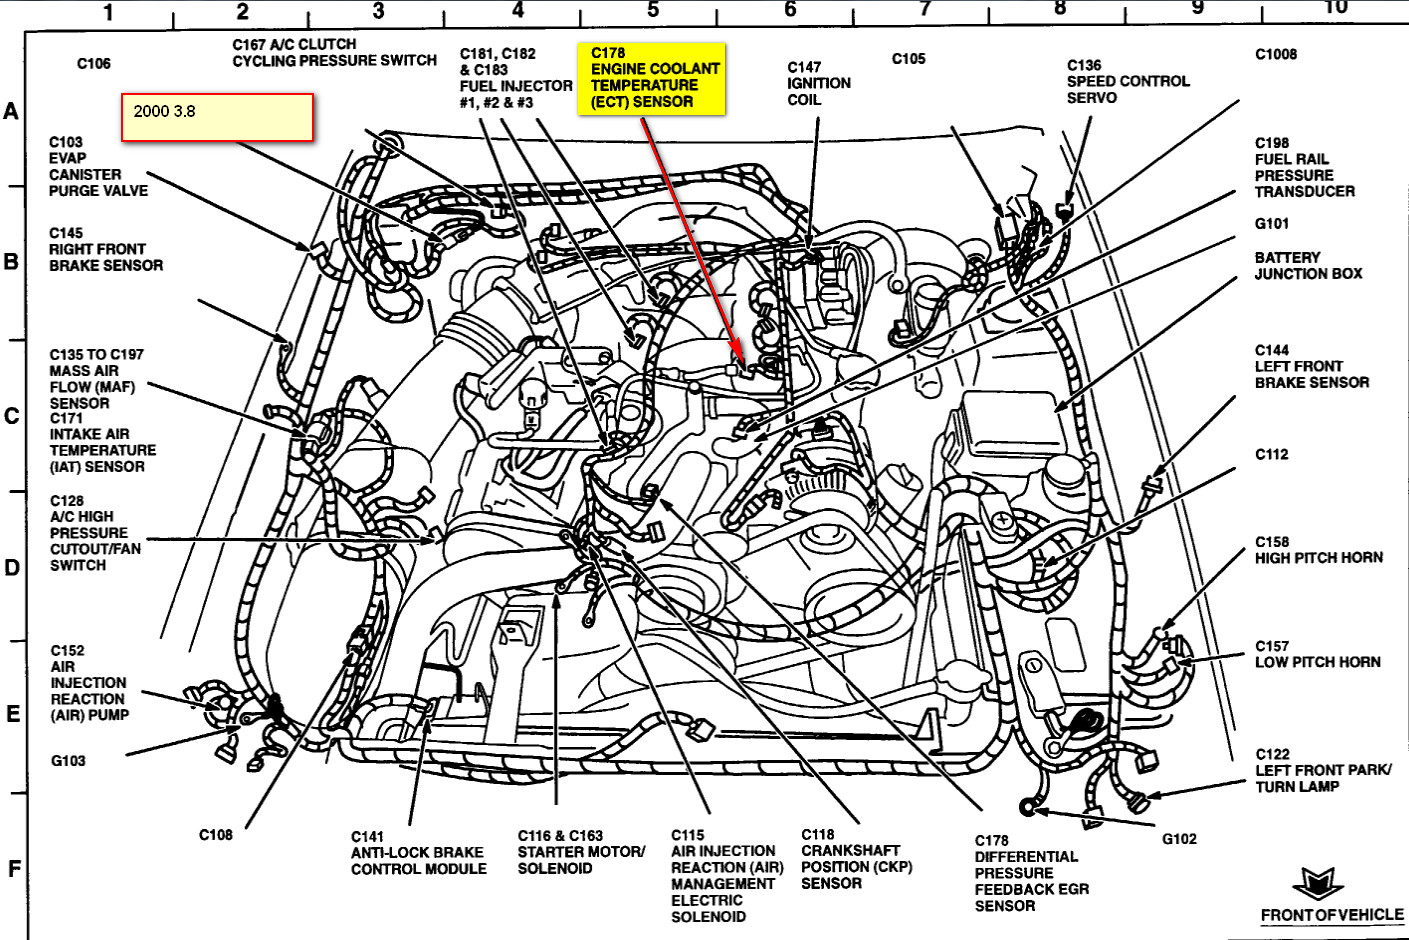 1991 Mazda Miata Engine Diagram Simple Guide About Wiring Free Ford Diagrams 1988 3800 Temperature Sensor Location